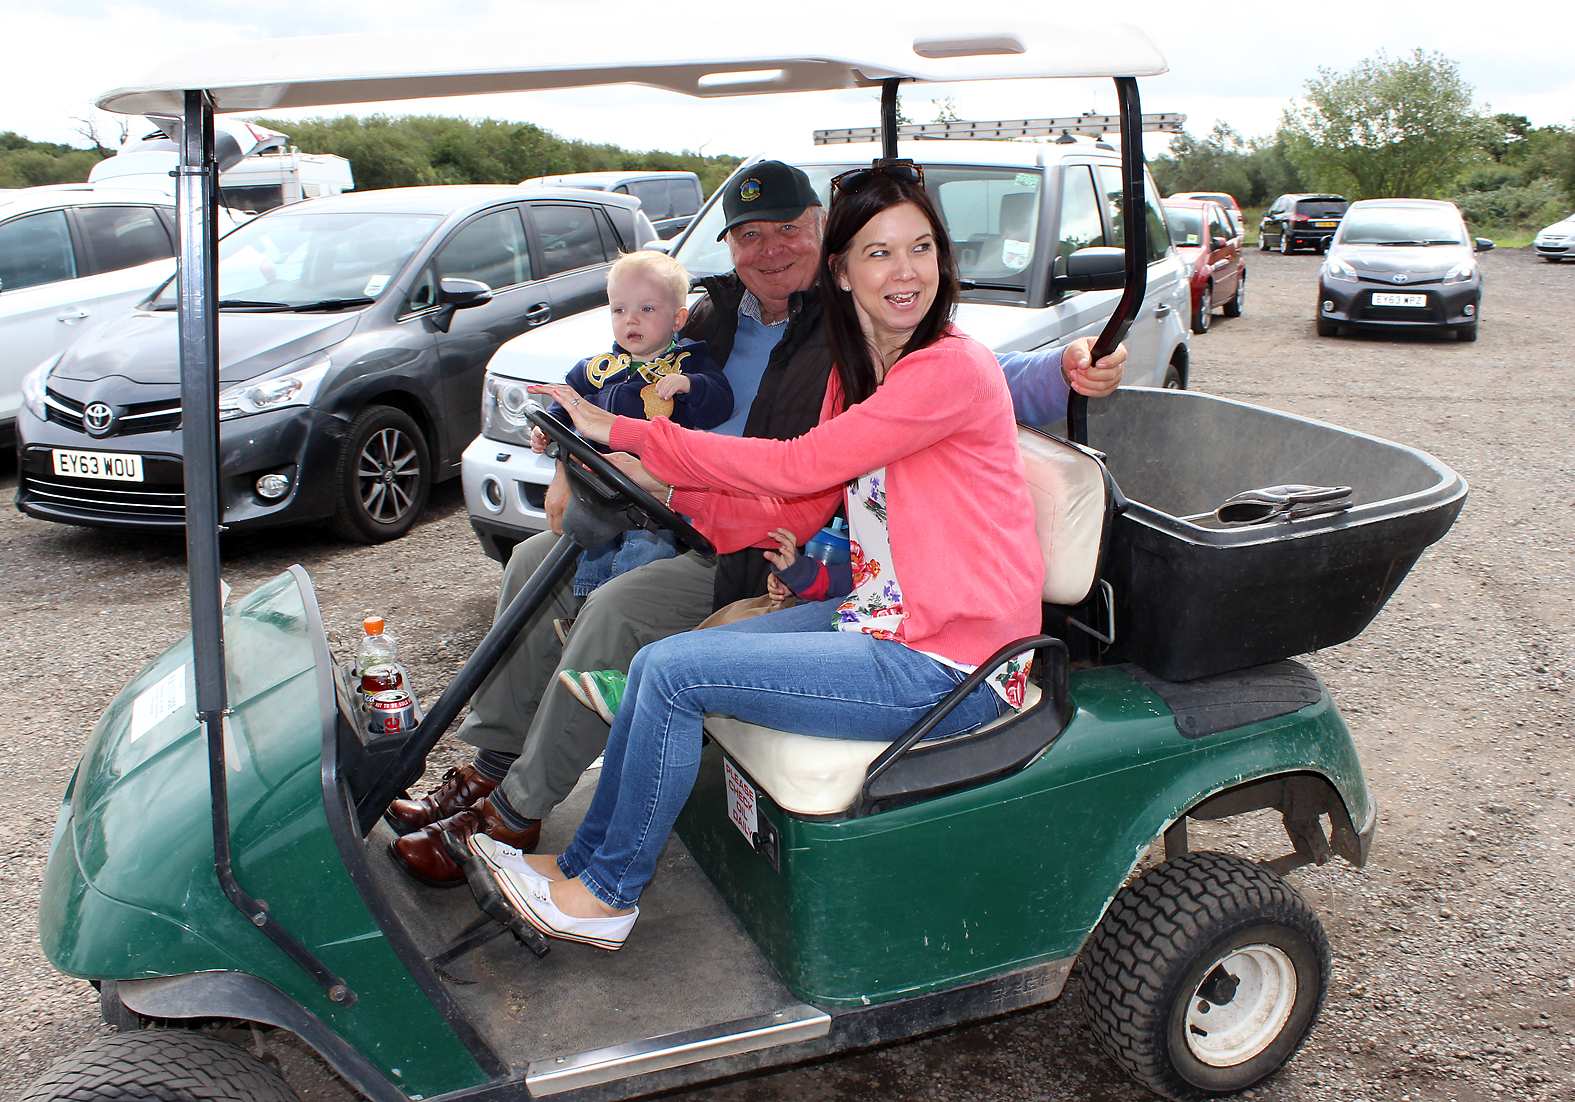 And off we go! Jo steers the golf buggy on an impromptu tour of the venue